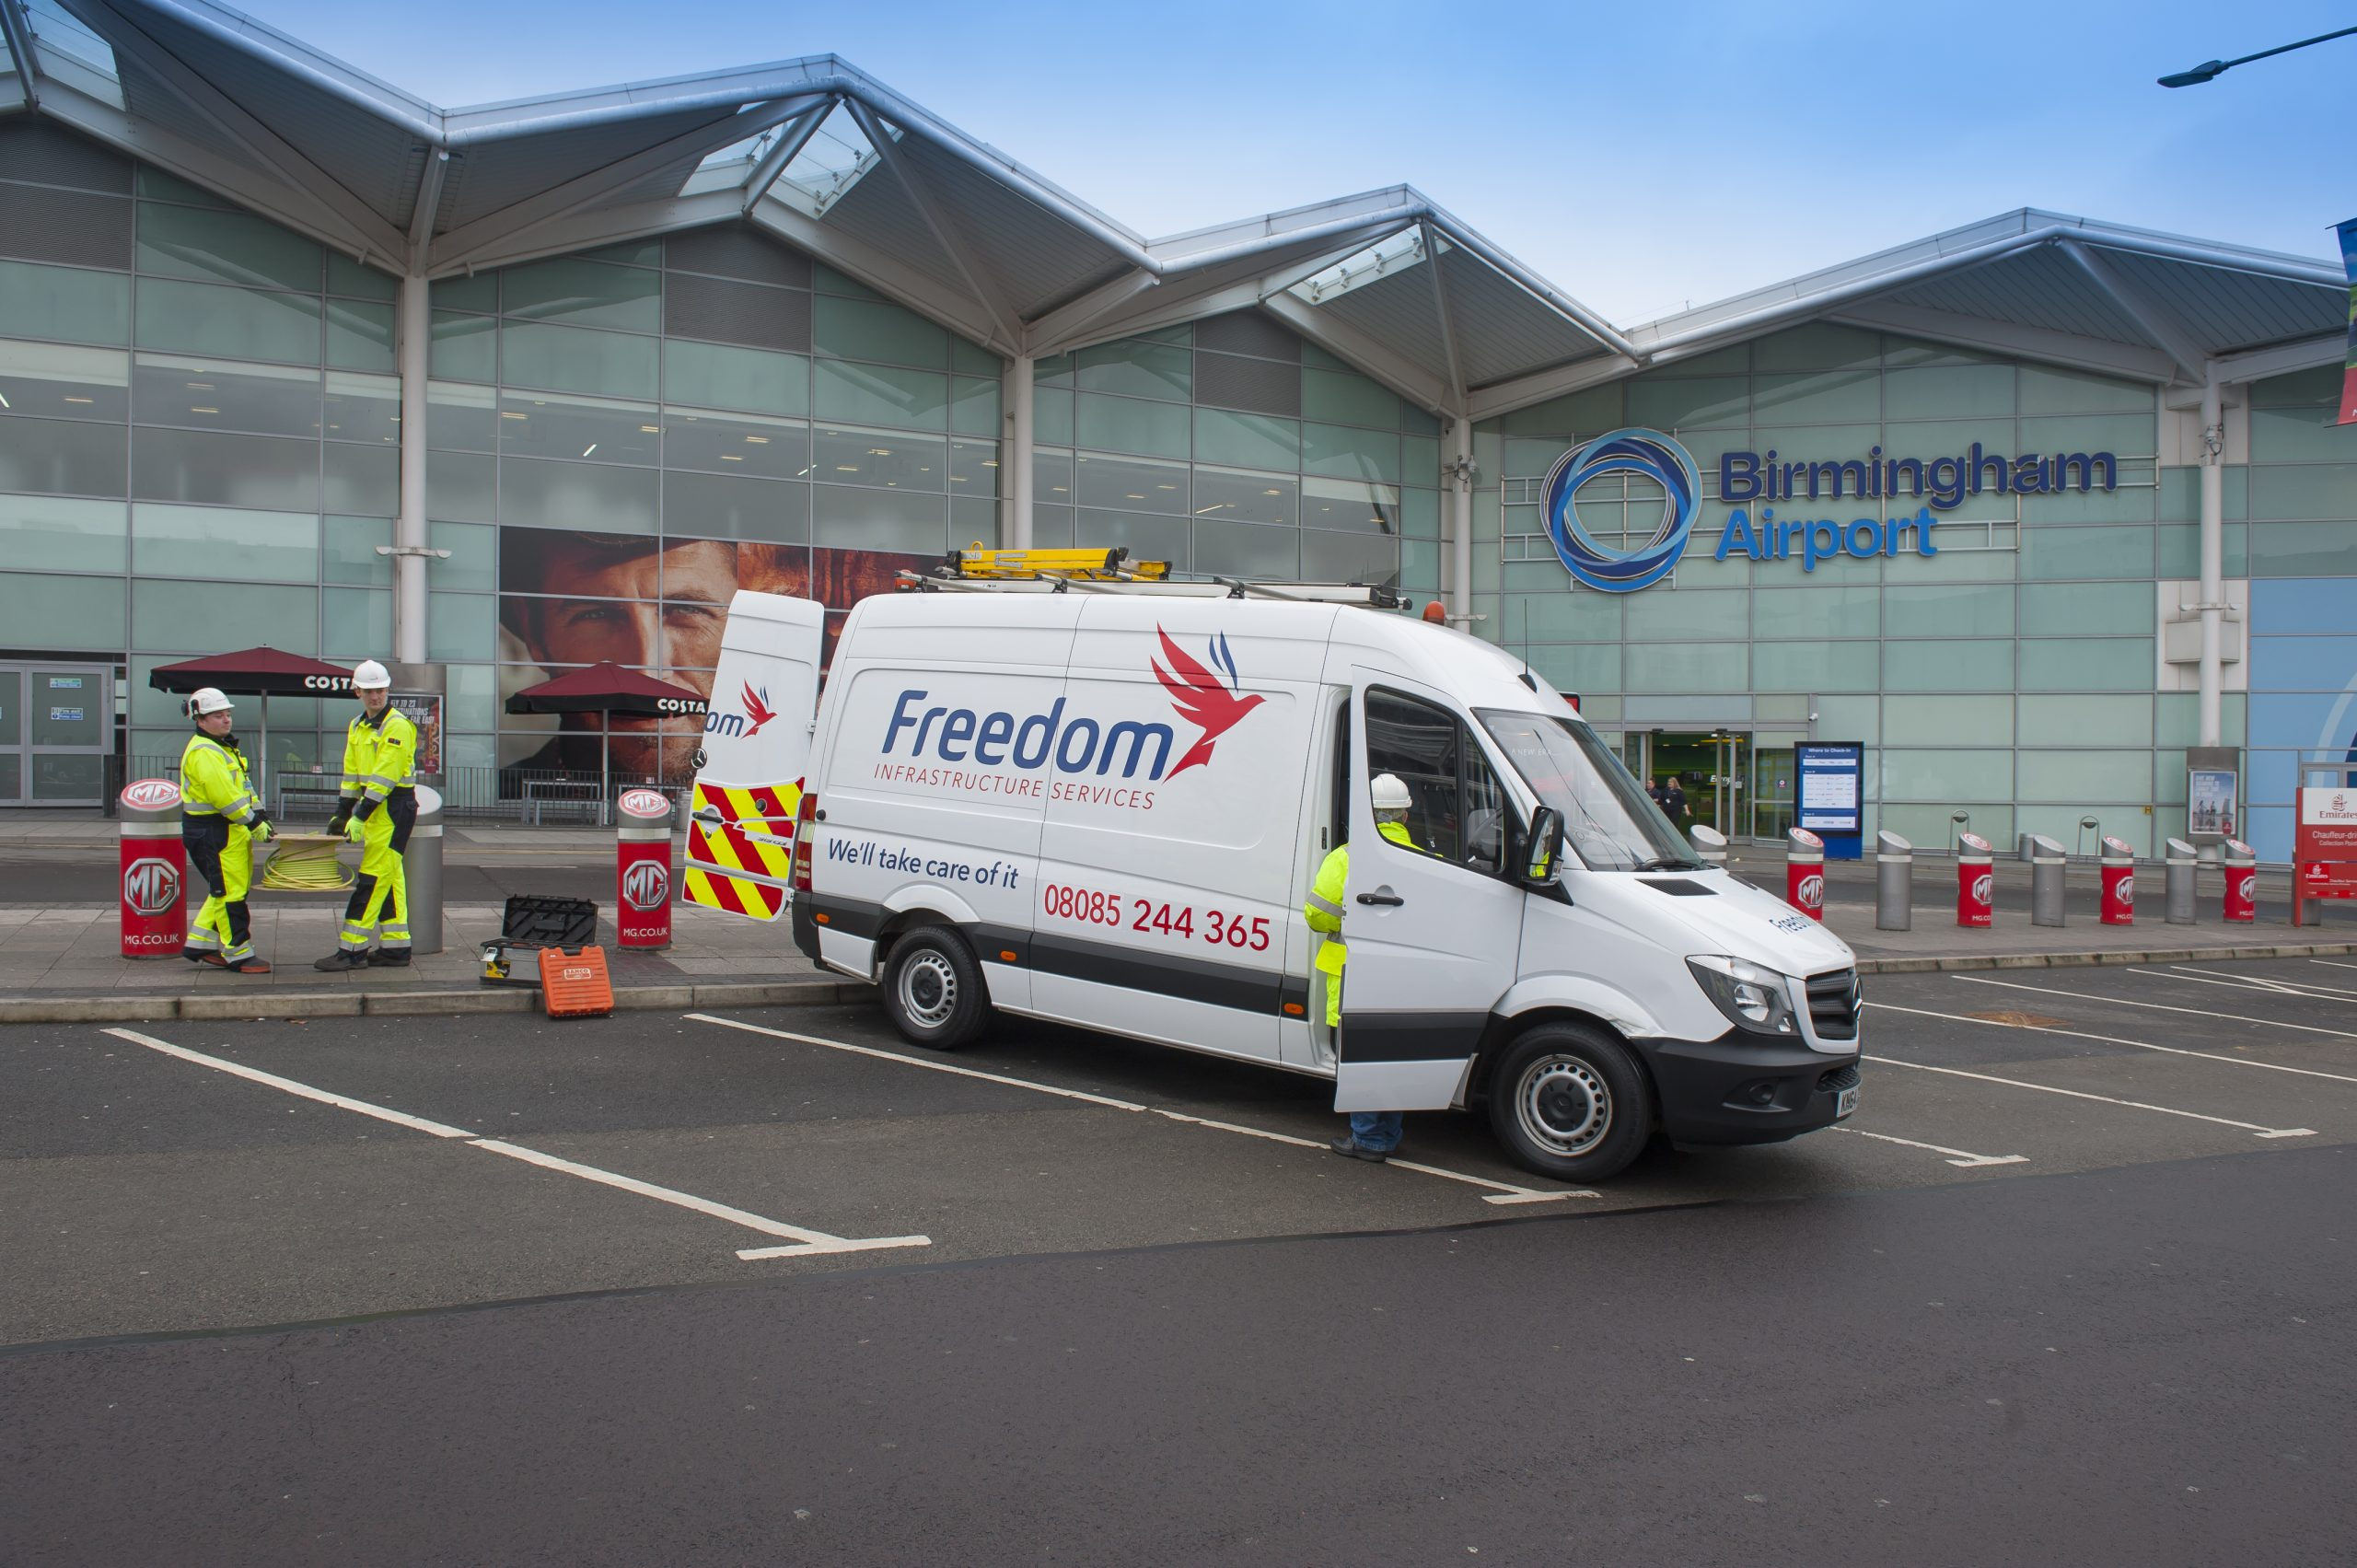 Freedom Group operate at Birmingham Airport